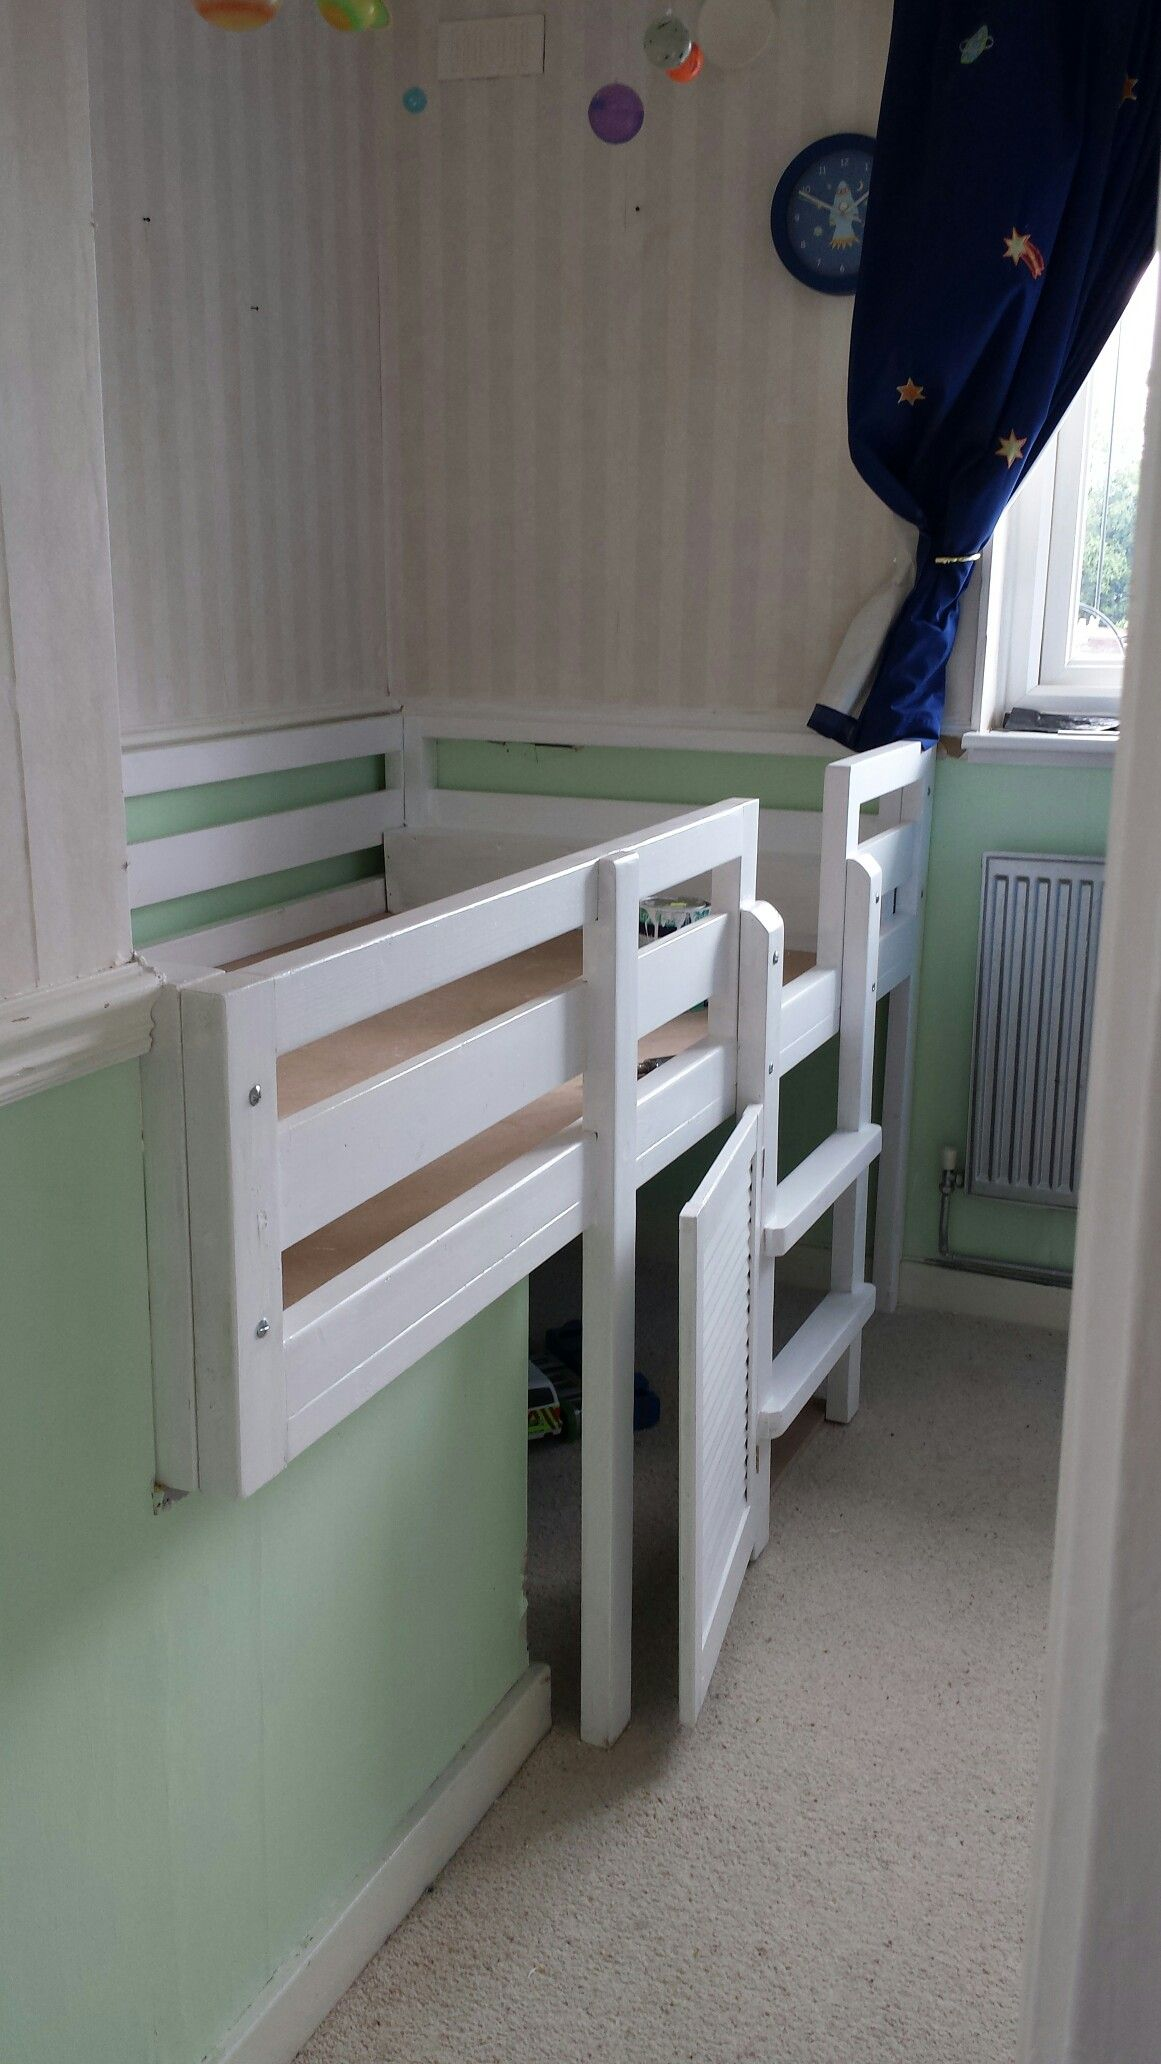 Small Beds For Box Rooms Our Custom Designed Bed To Incorporate Stair Bulkhead